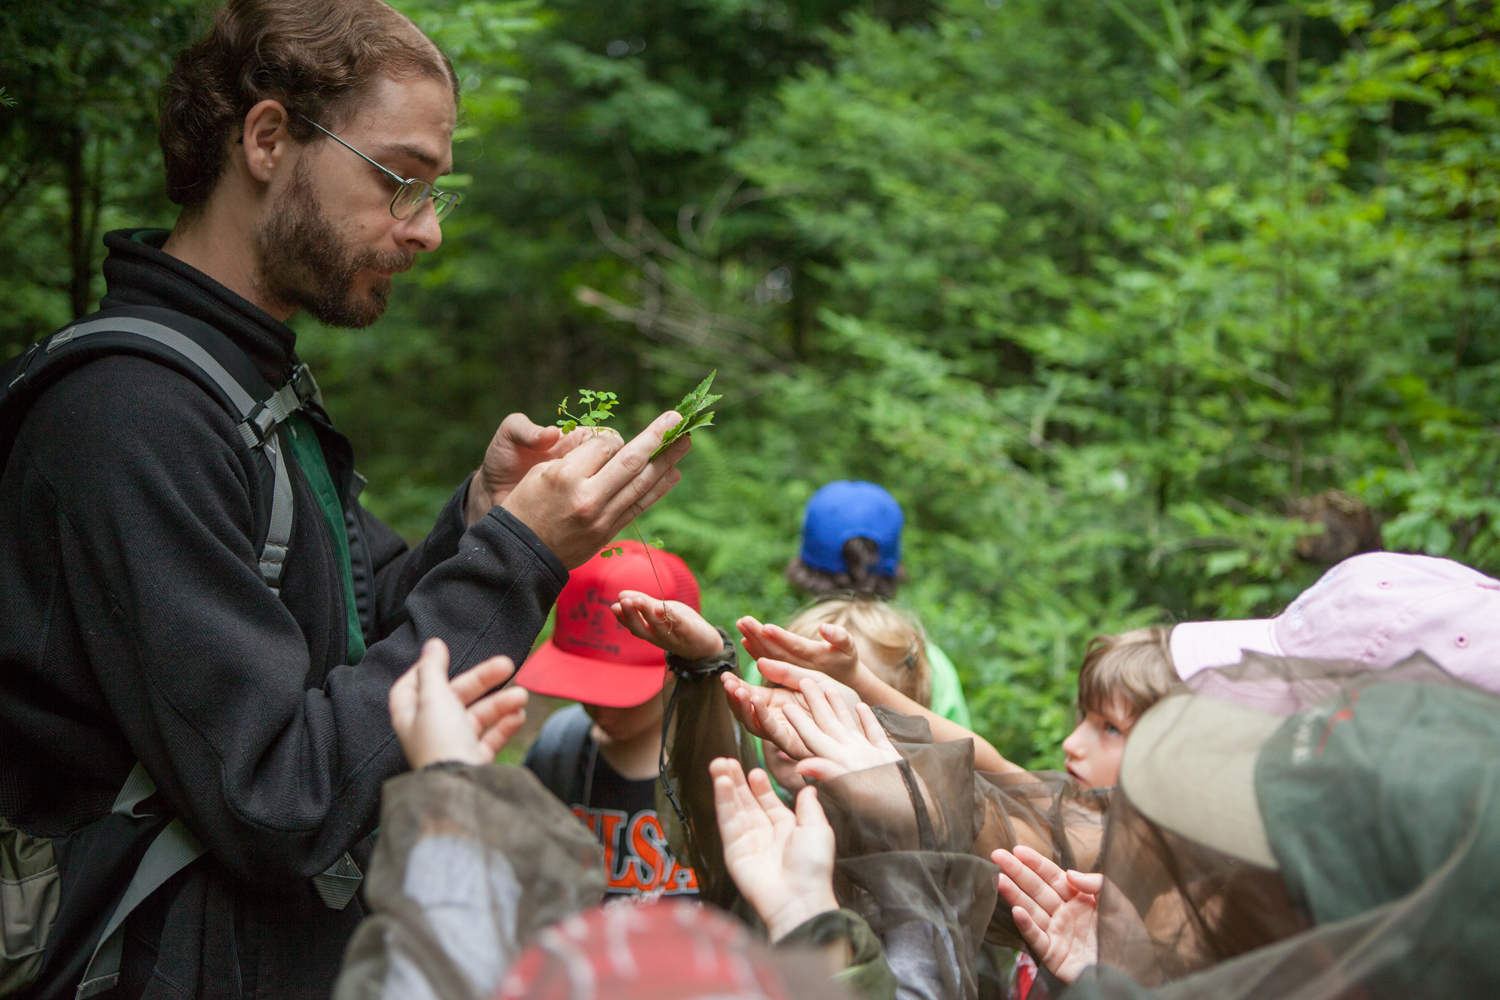 The staff brings a diversity of recreation, historic, artistic and environmental education to the camp's programming. They are committed to teaching all generations an appreciation of the great outdoors.